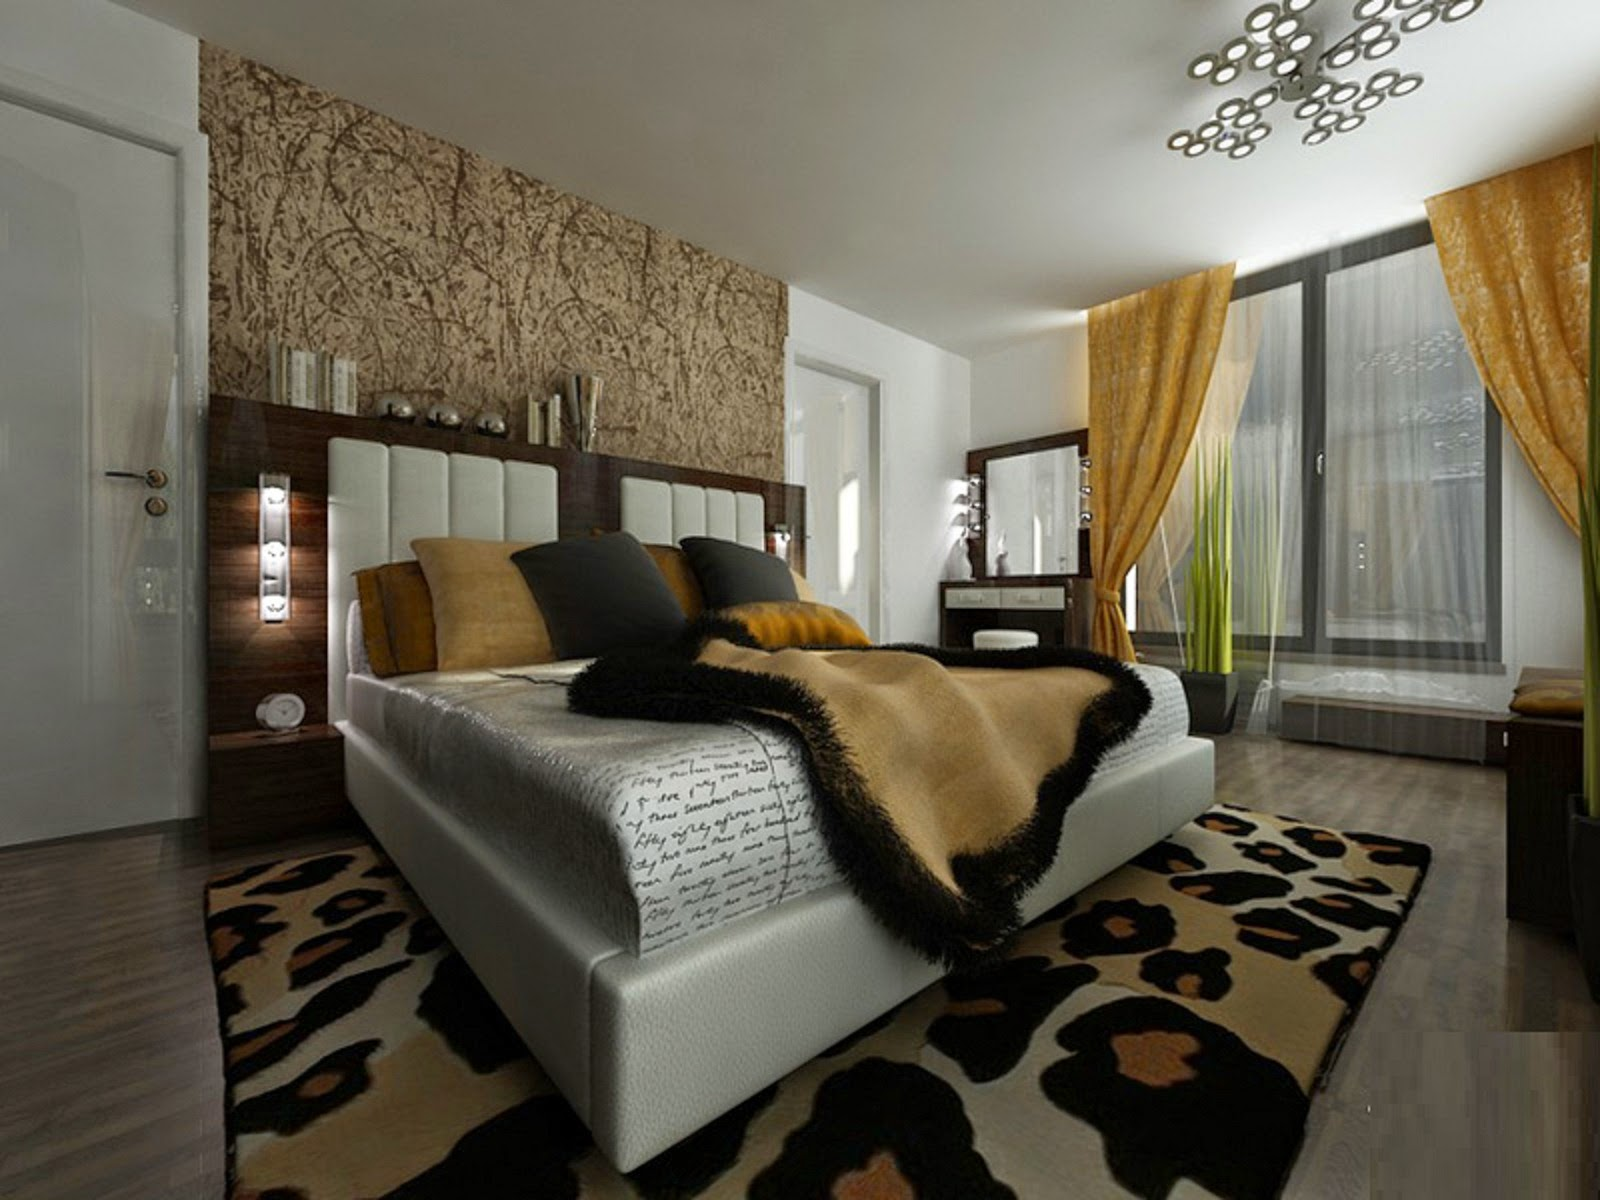 Dynamic views most beautiful bedroom interior designs for Designs of the interior